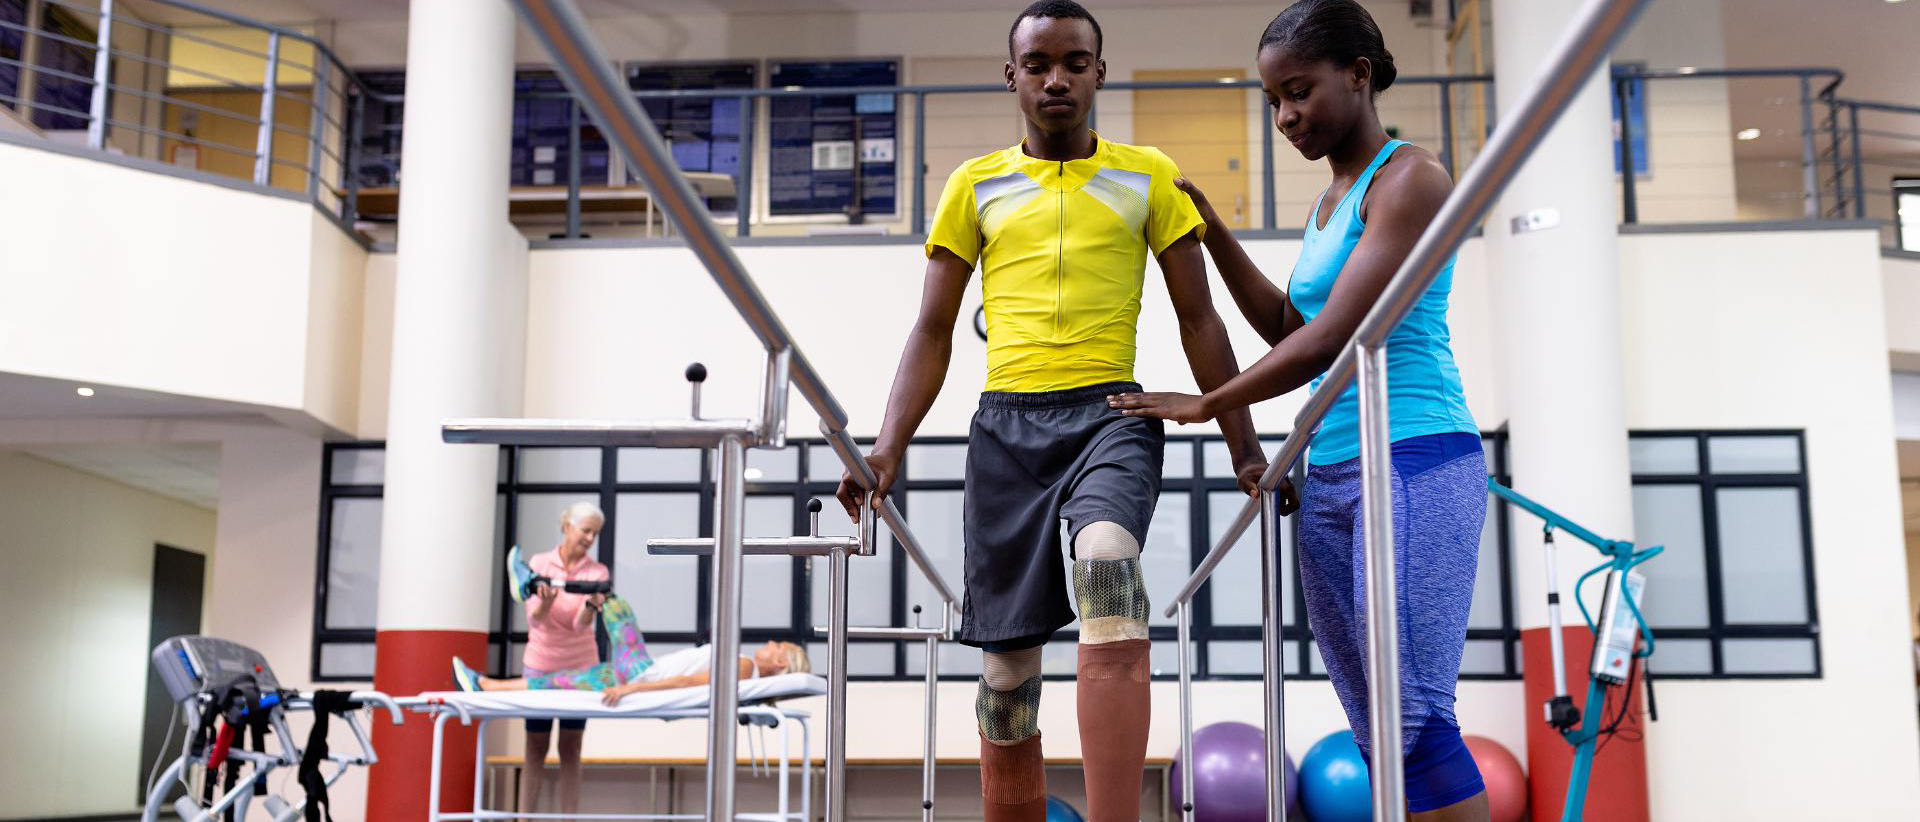 Low angle view of African-american physiotherapist helping disabled African-american man walk with parallel